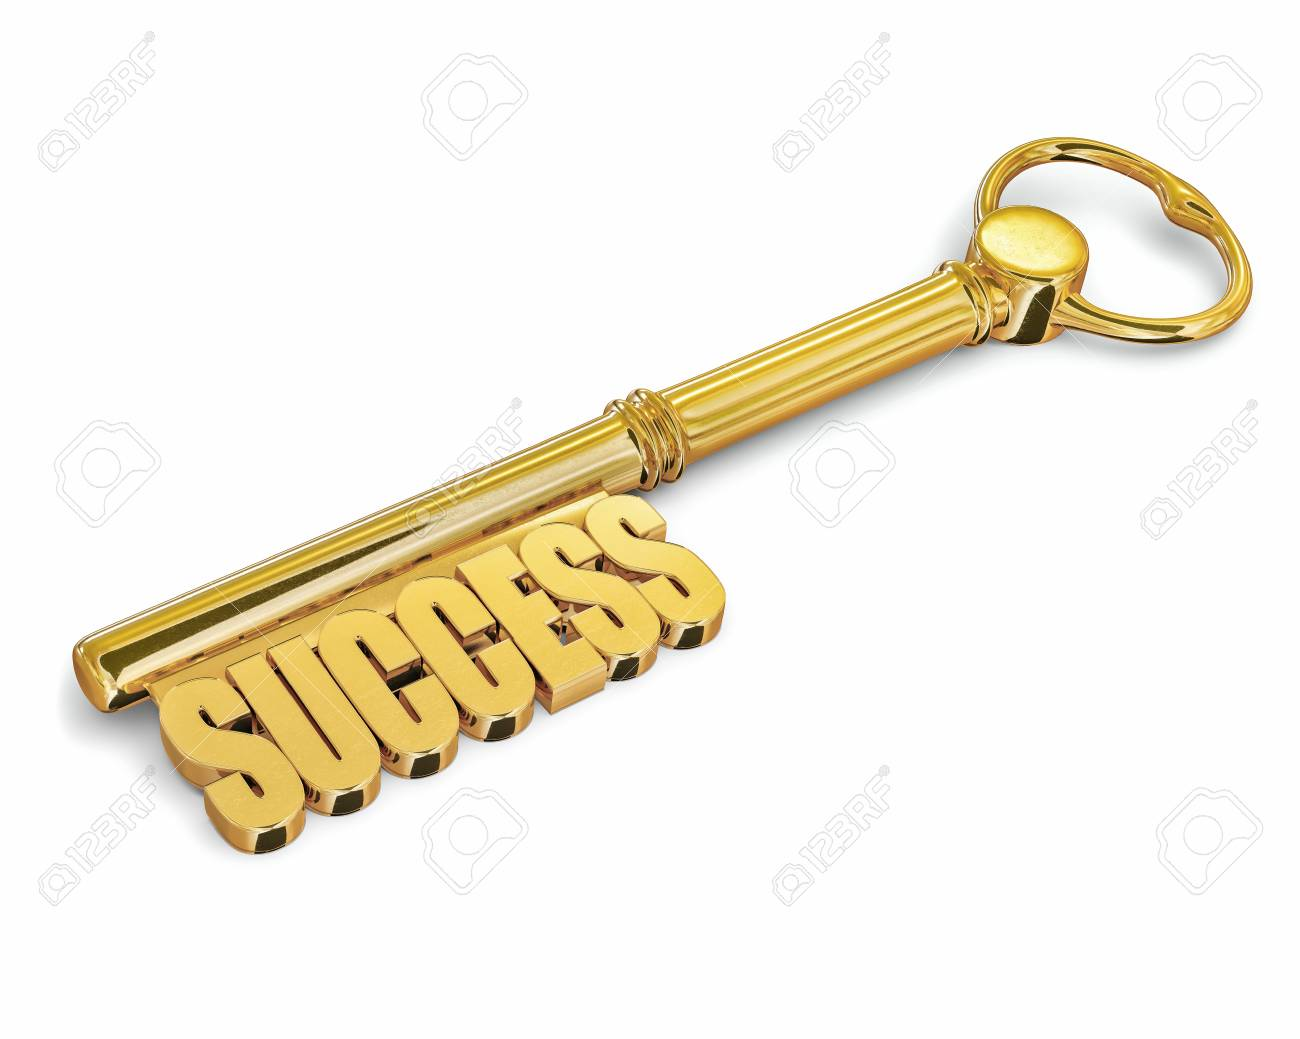 Success Wealth Prosperity Concept Golden Key To Success Made Stock Photo Picture And Royalty Free Image Image 27543671